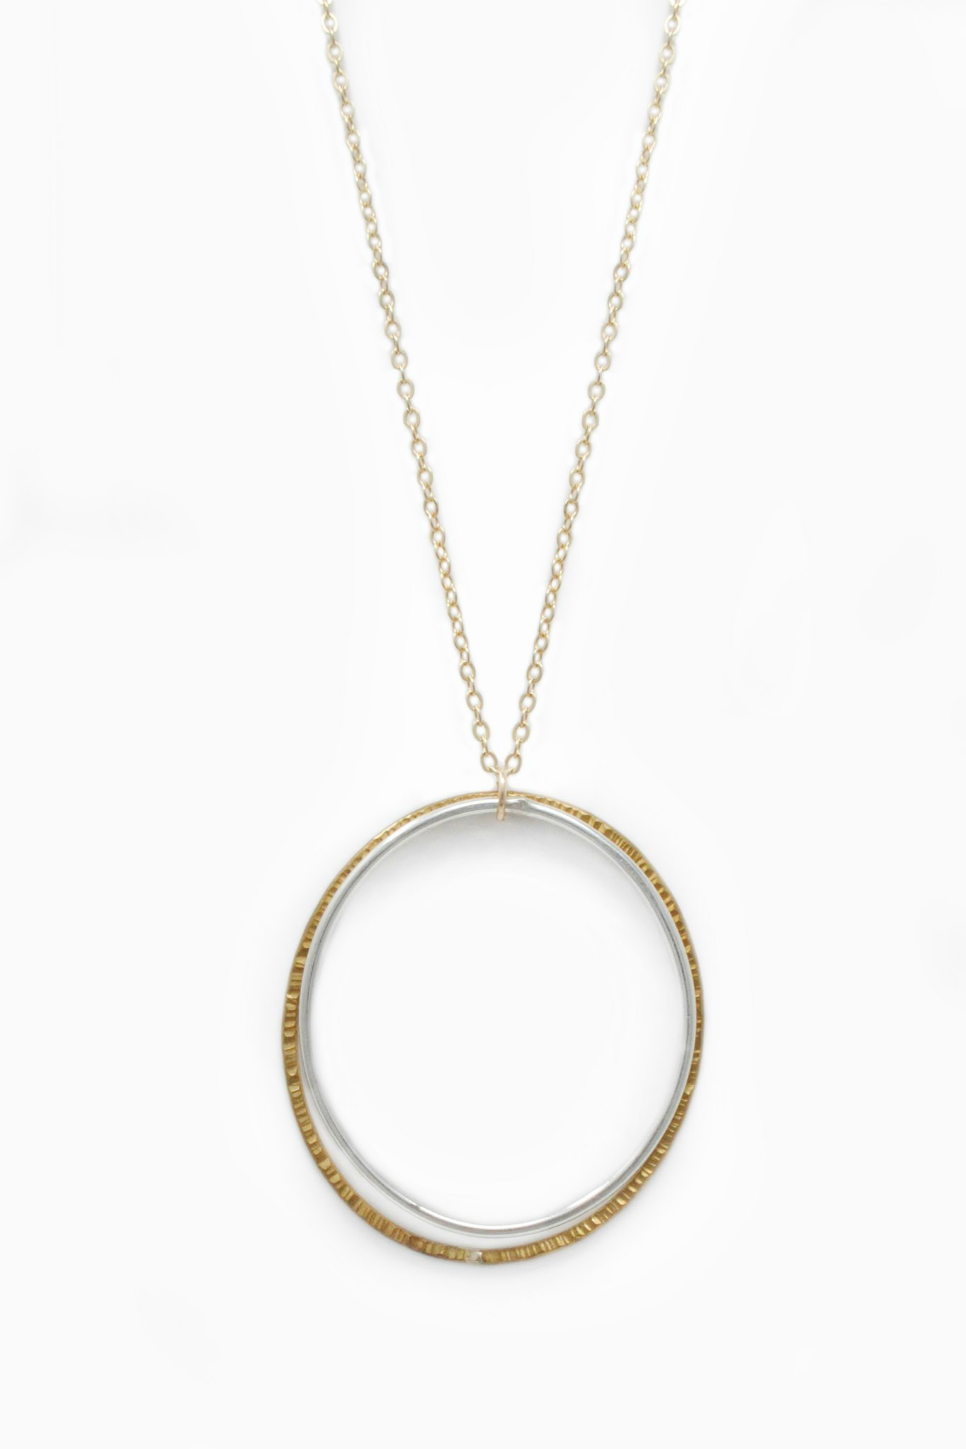 Able - Duo Necklace - Two Tone